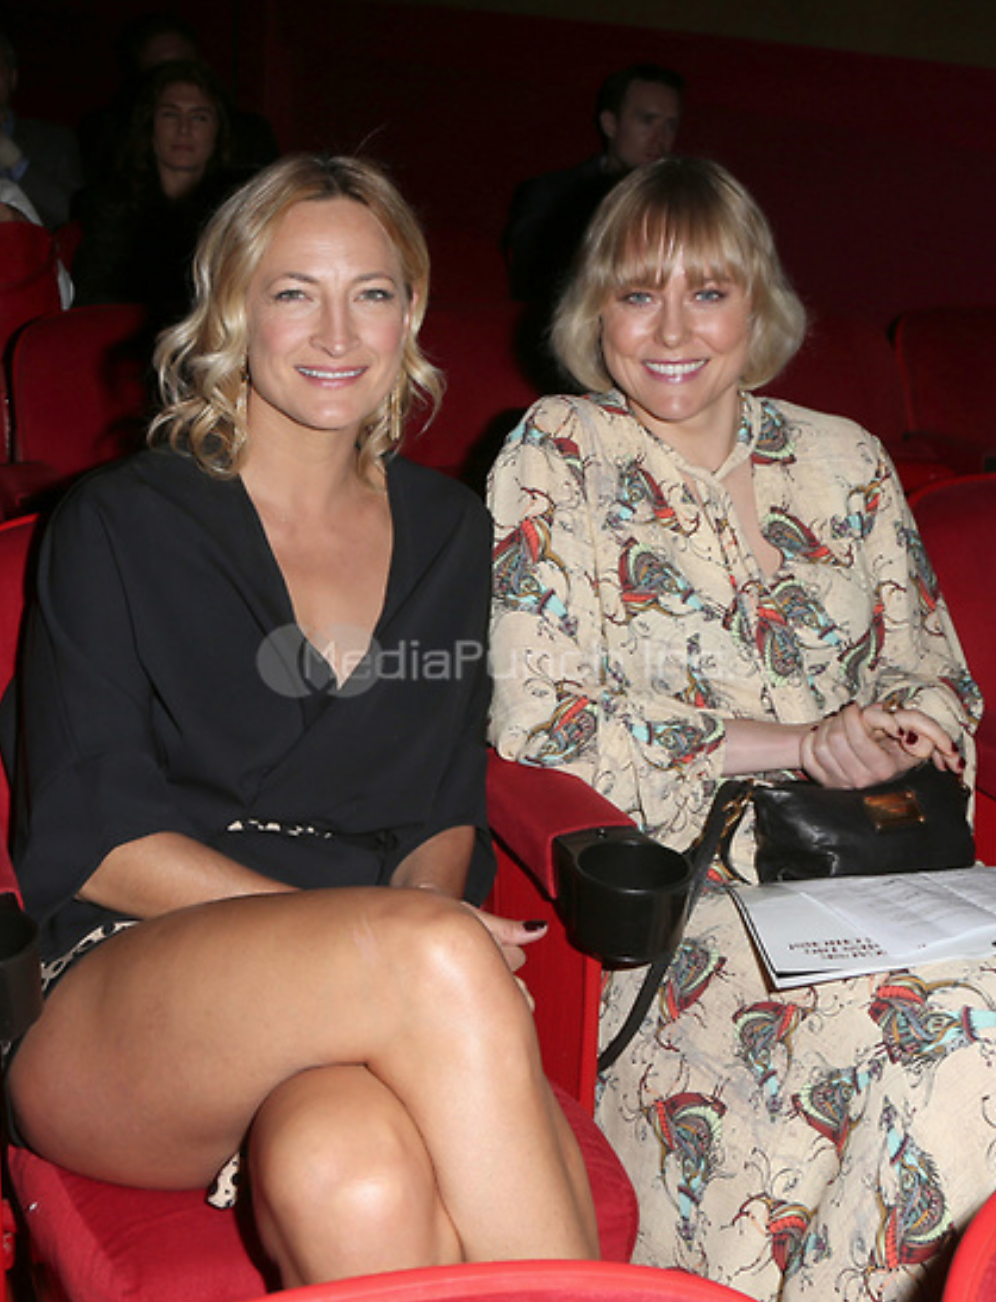 Zoe Bell And Ingrid Bolso Berdal